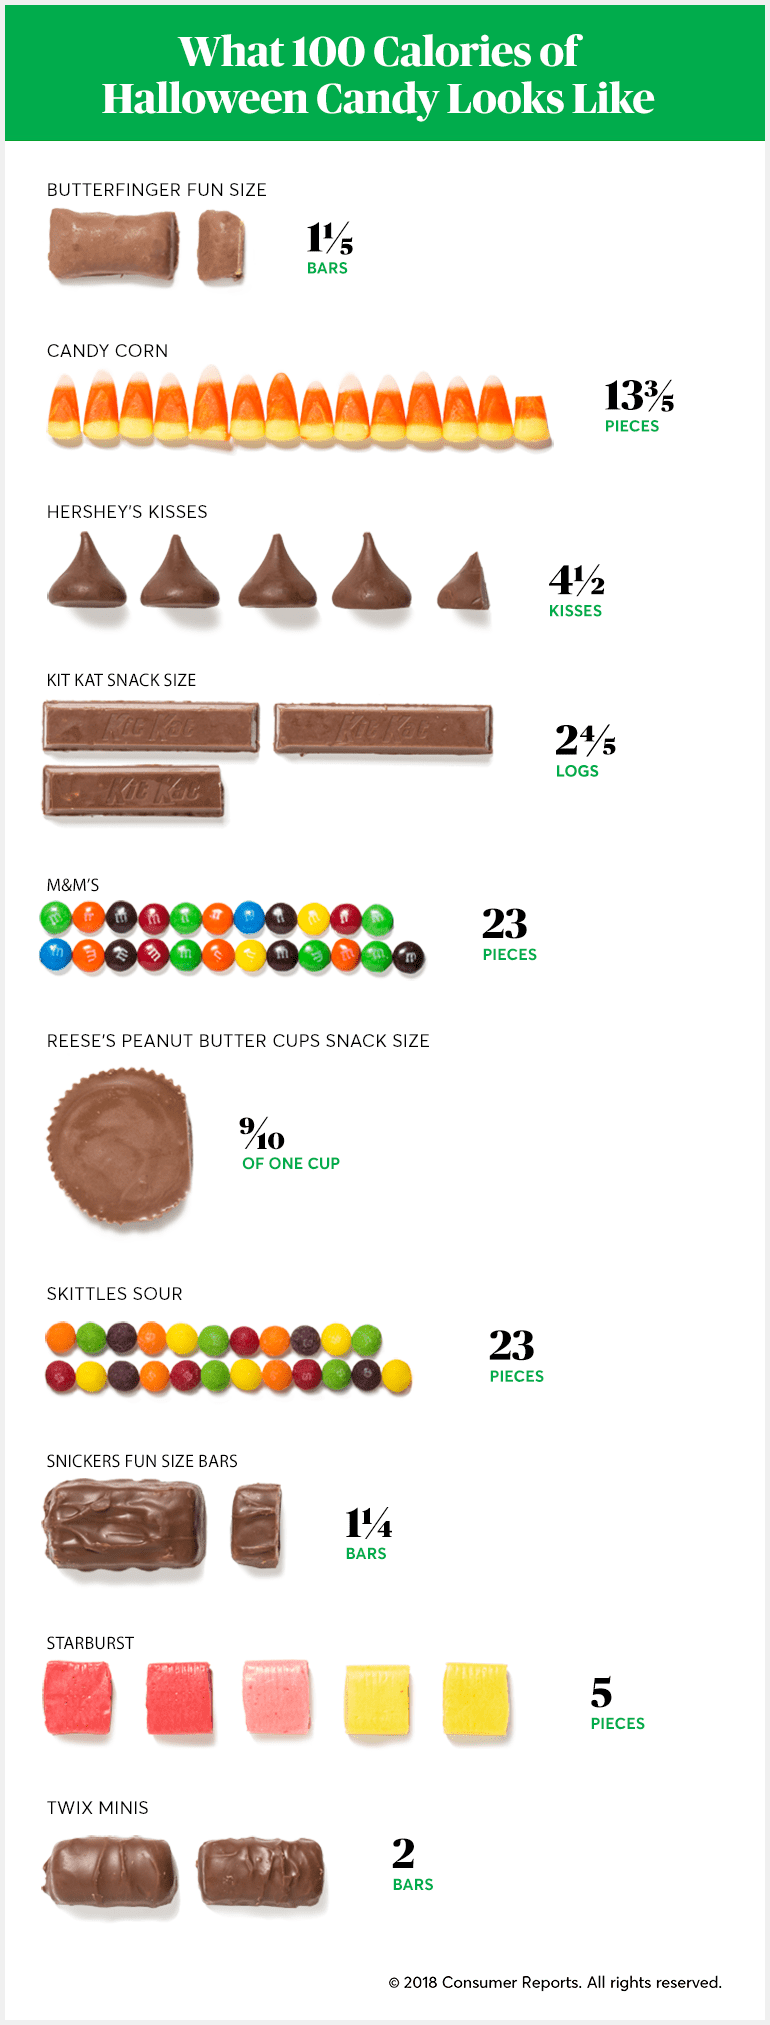 How many calories are in the candy